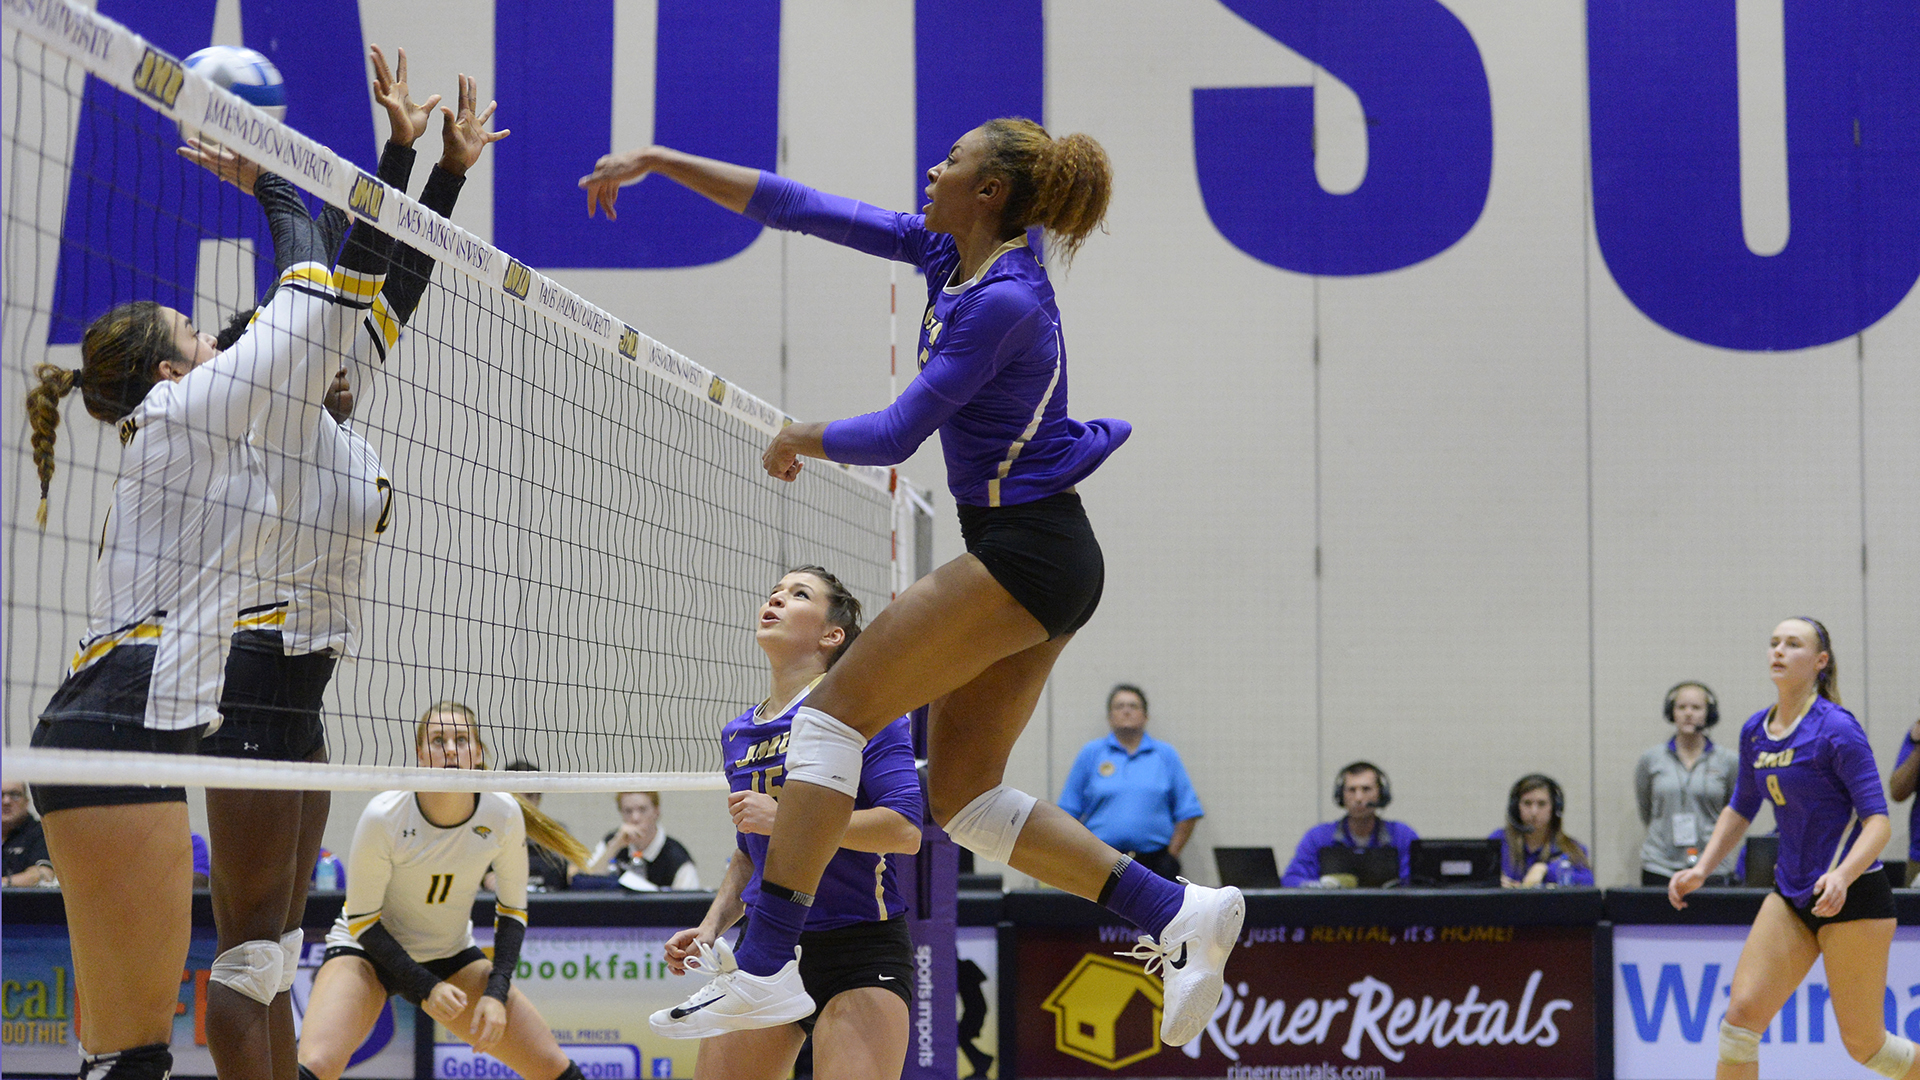 Women's Volleyball: Dukes Advance to CAA Championship Match with Sweep over Towson)